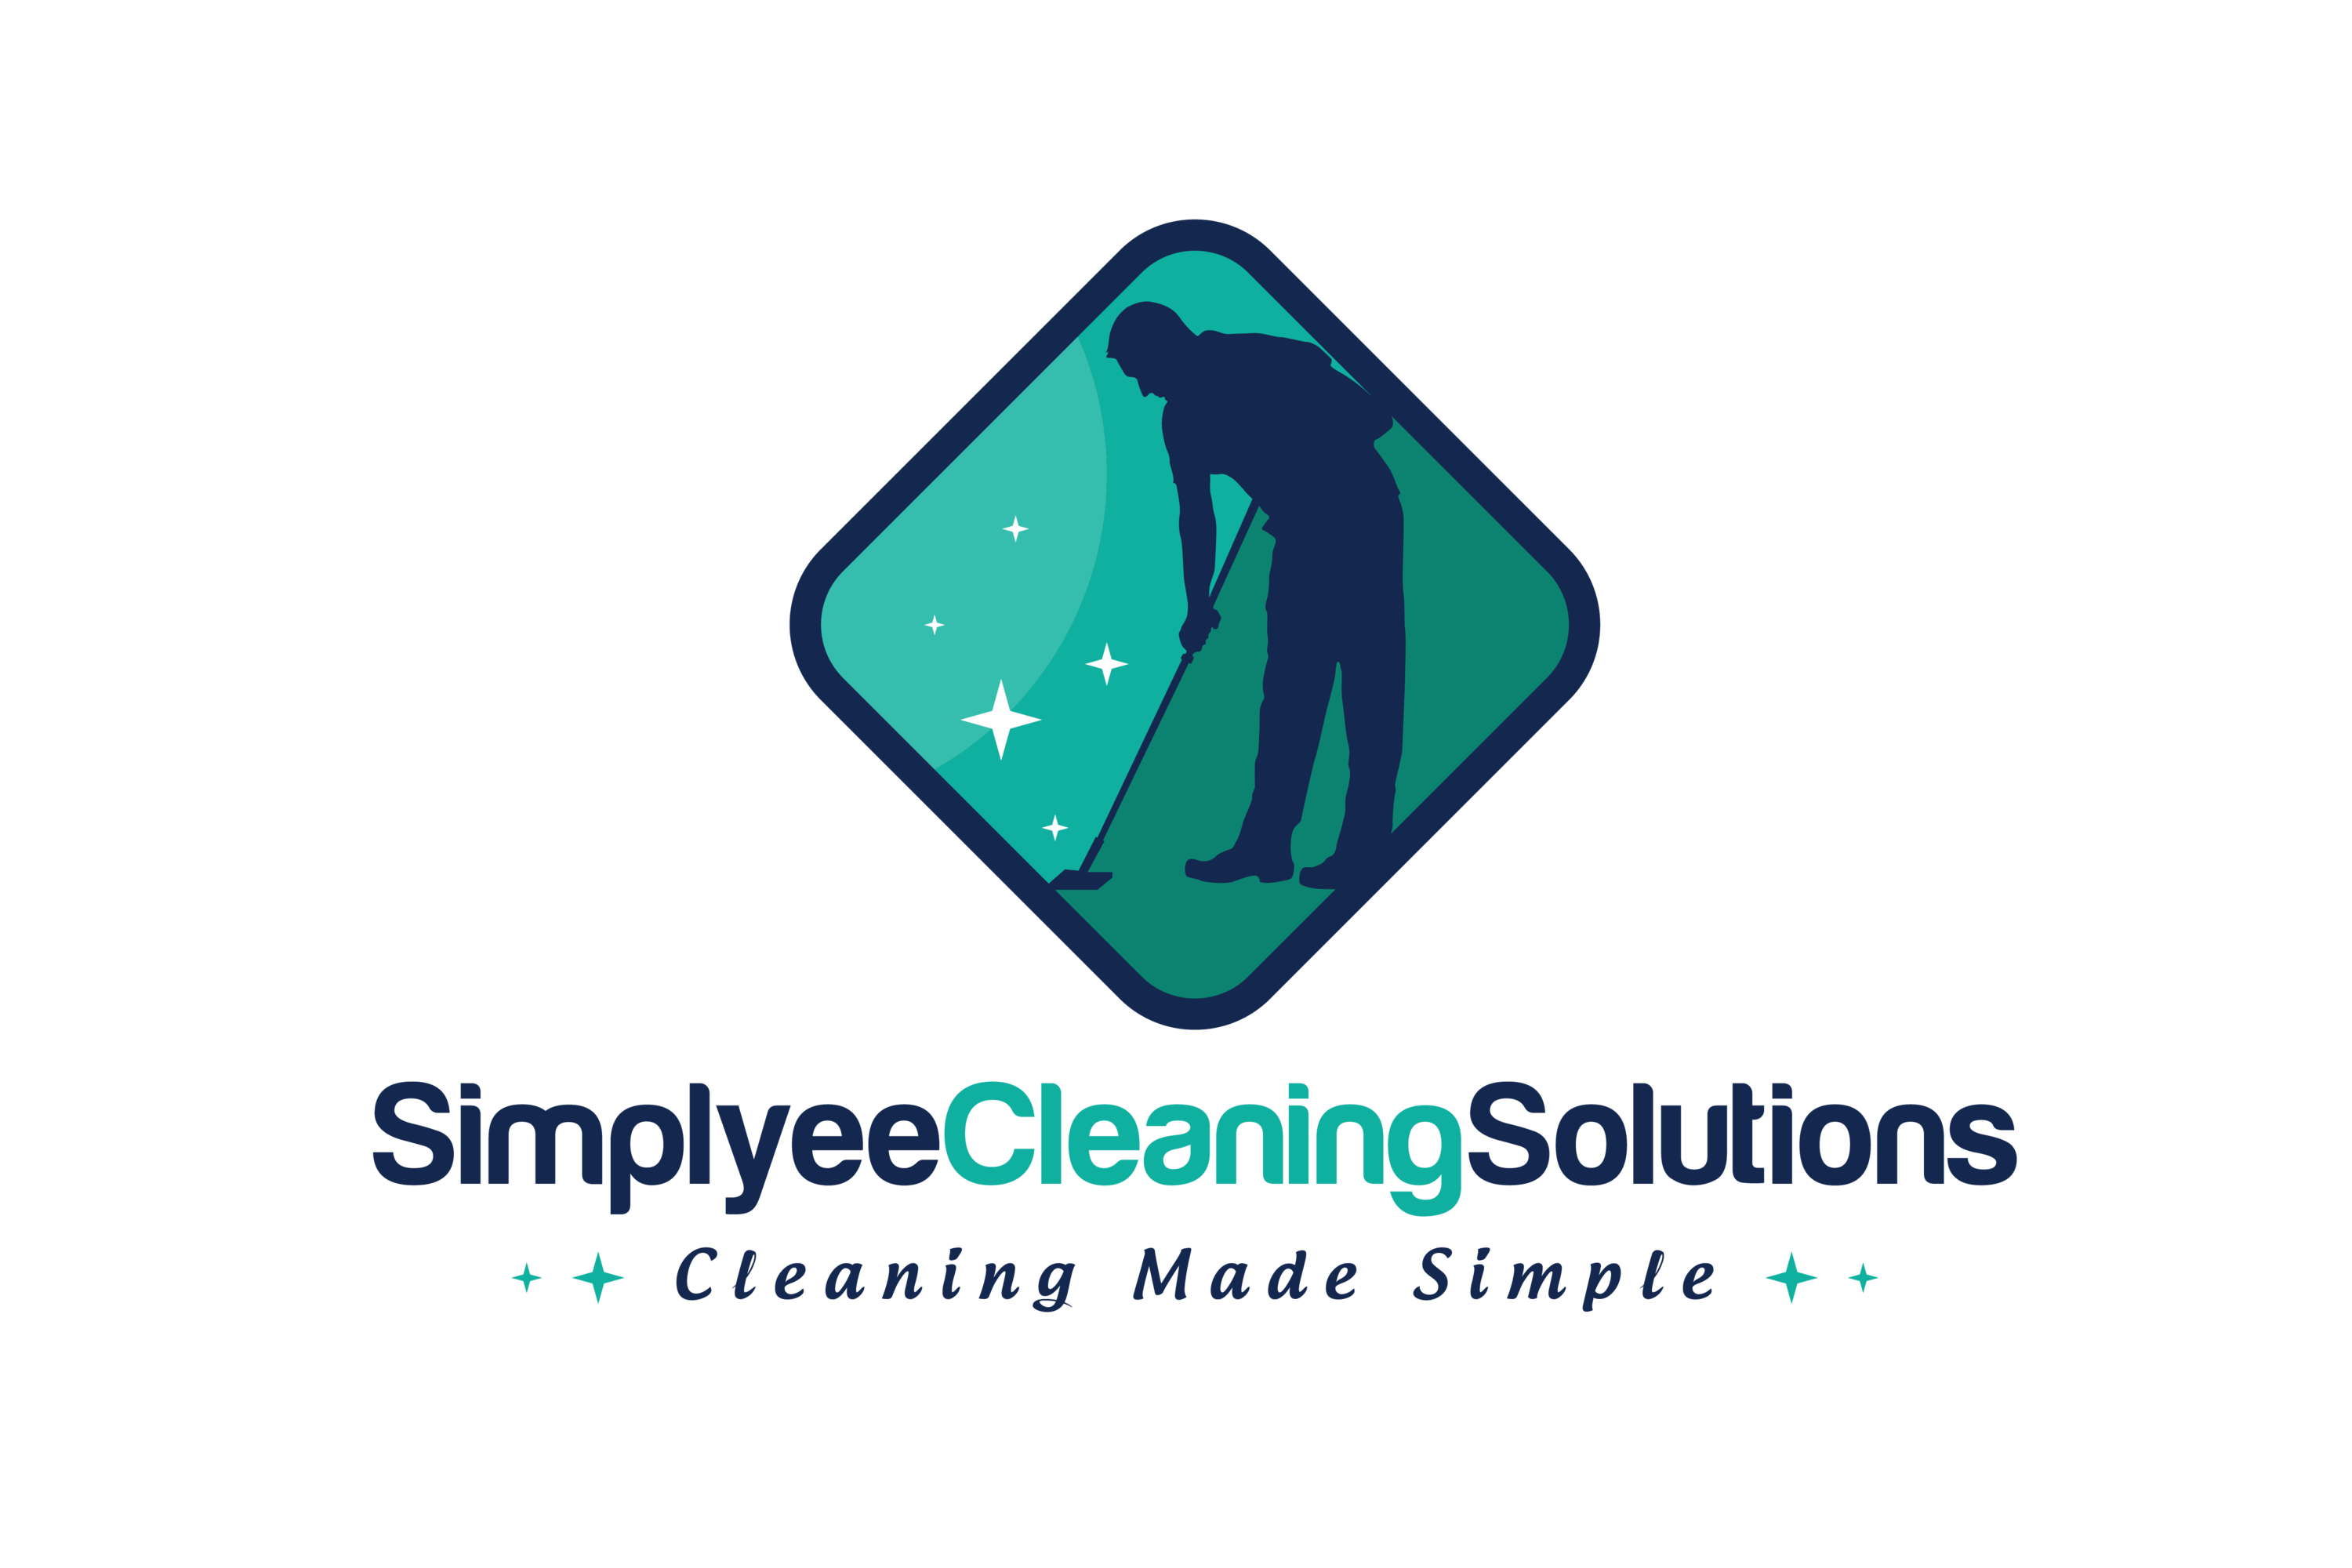 Commercial Cleaning, Simplyee Cleaning Solutions, RI cleaning, Cleaning services